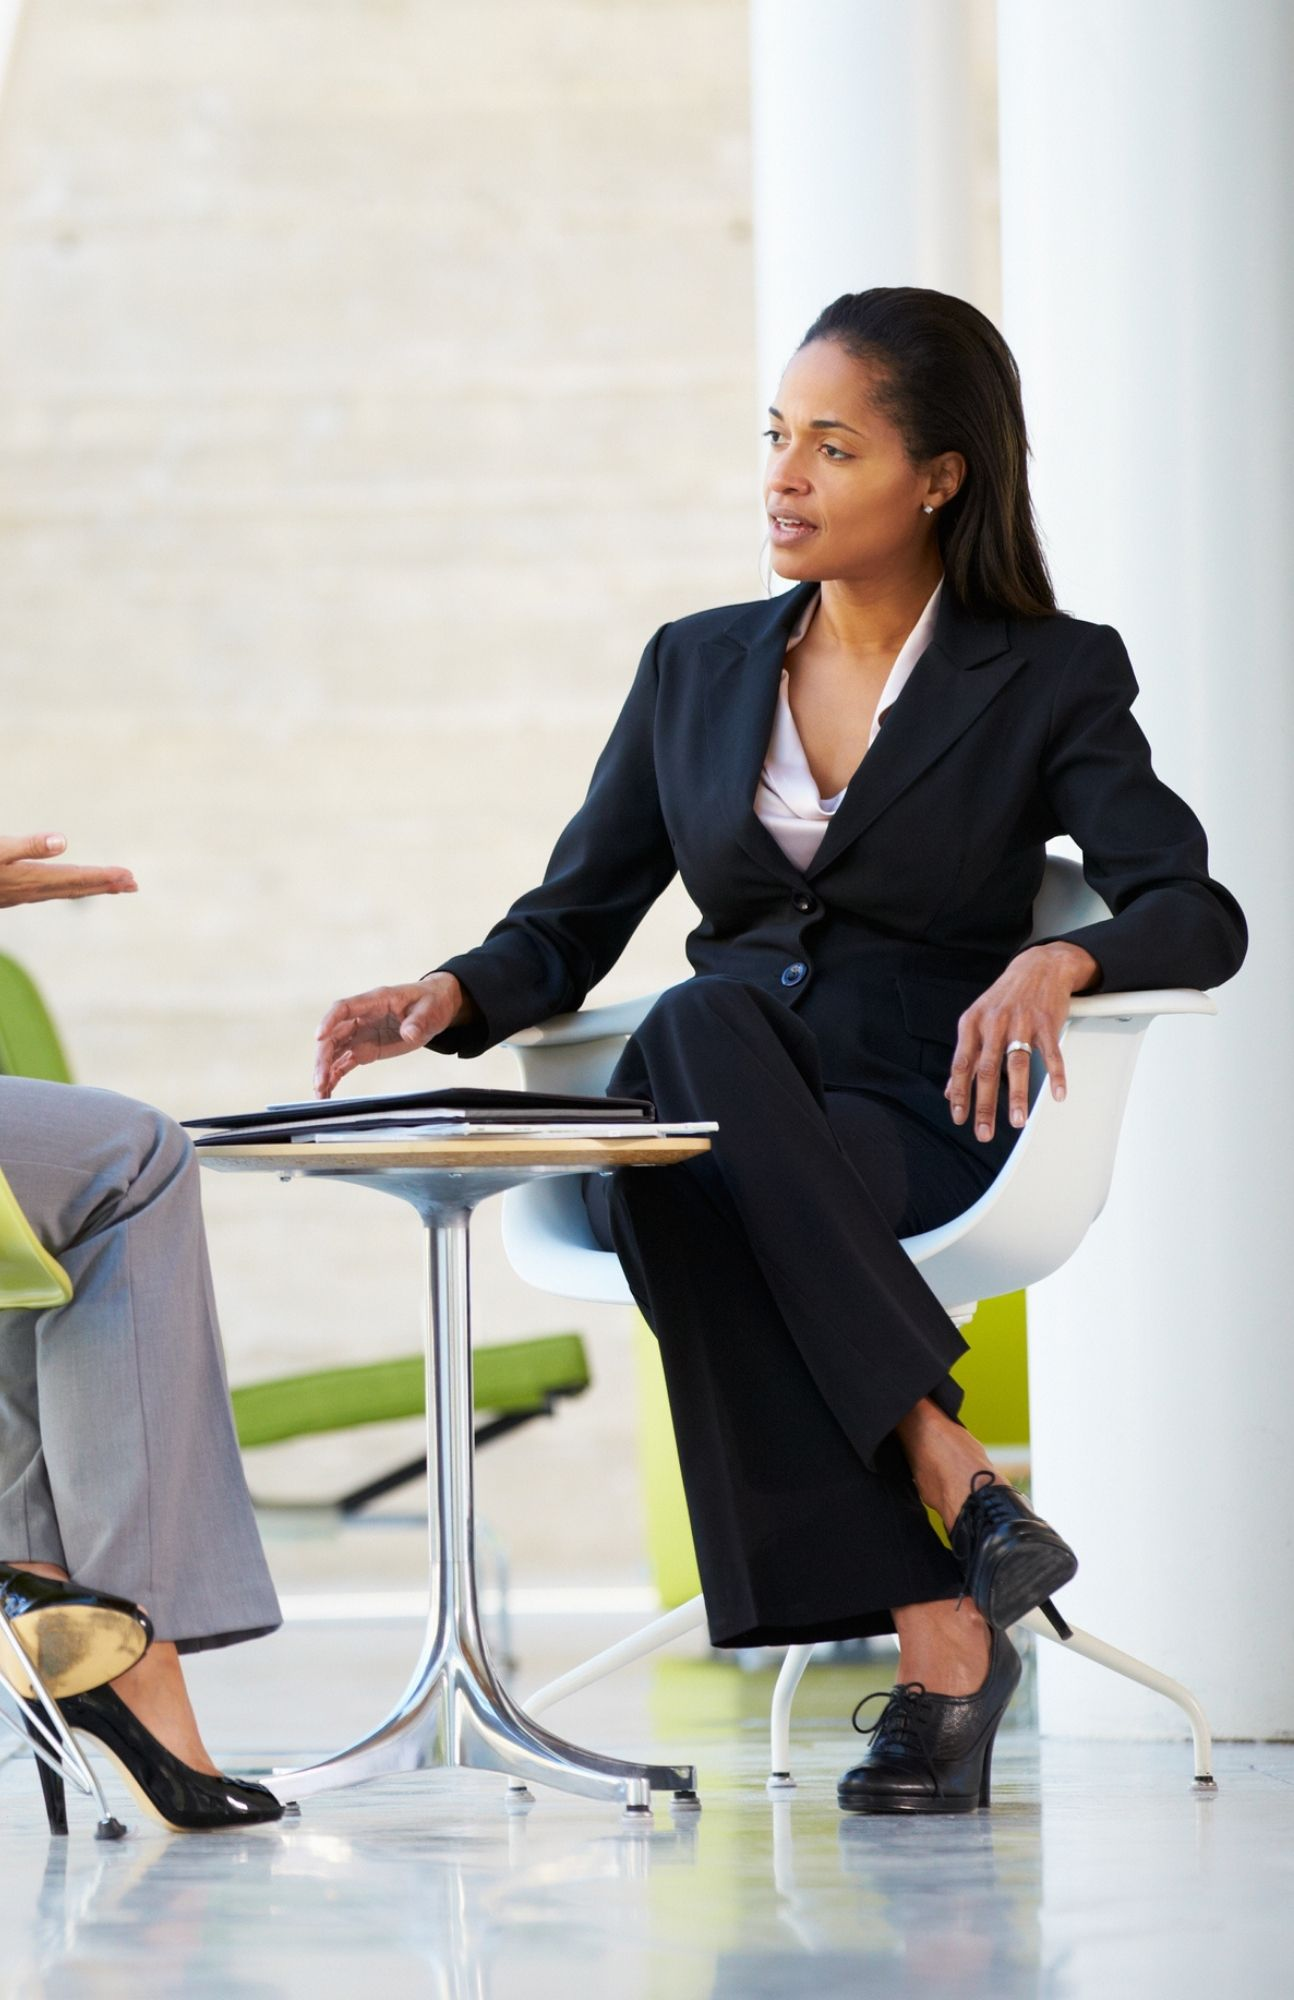 A woman sitting in a 1 on 1 meeting with a coworker.